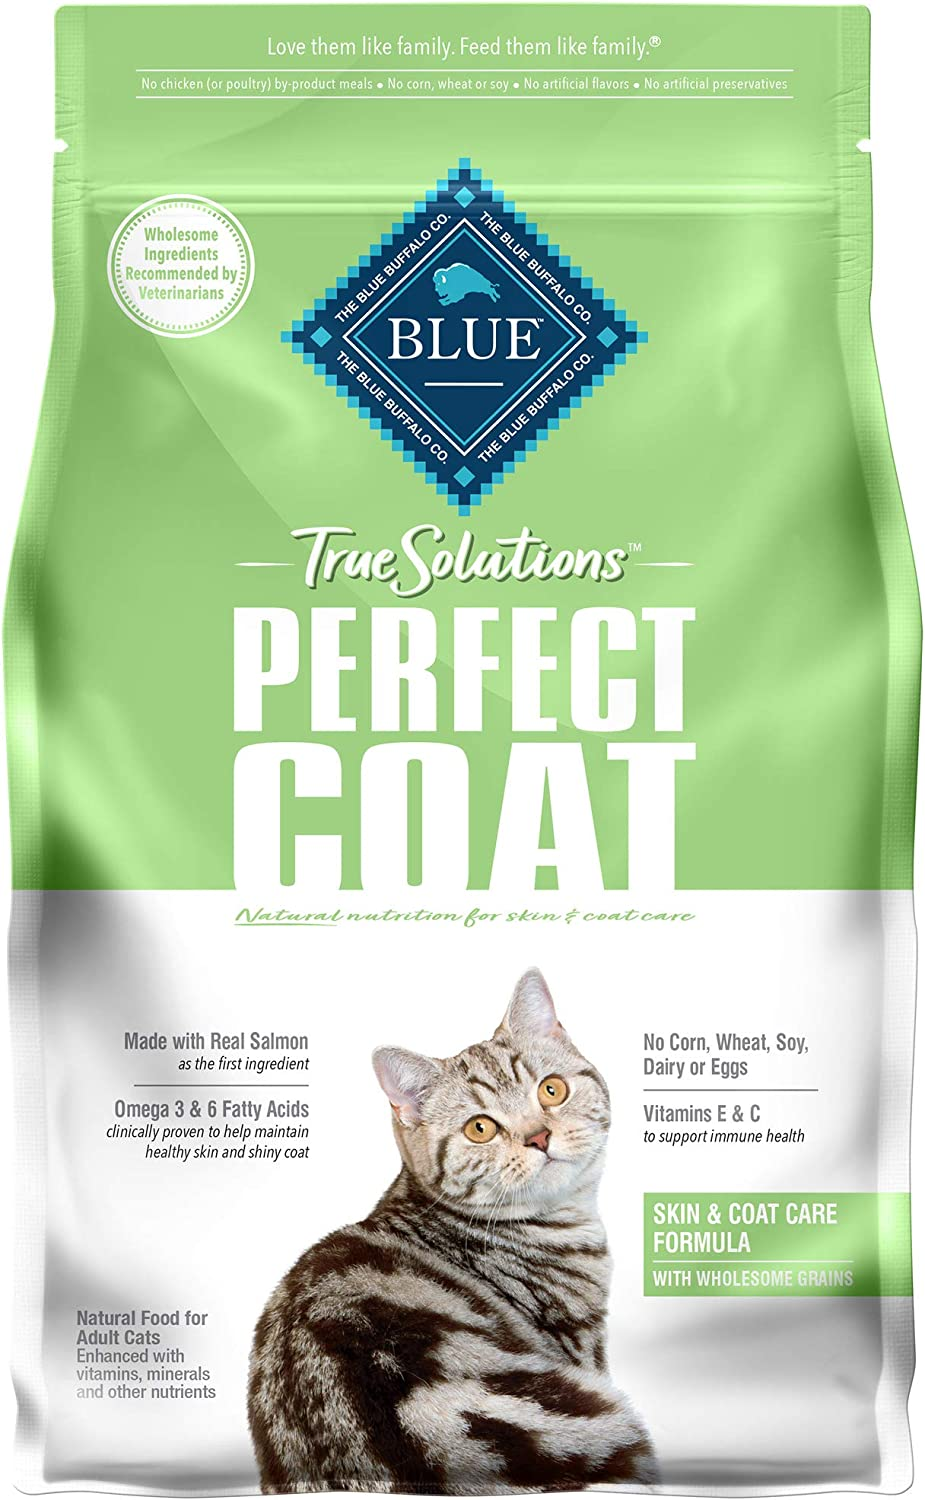 Blue Buffalo True Solutions Perfect Coat Natural Skin & Coat Care Adult Dry Cat Food and Wet Cat Food